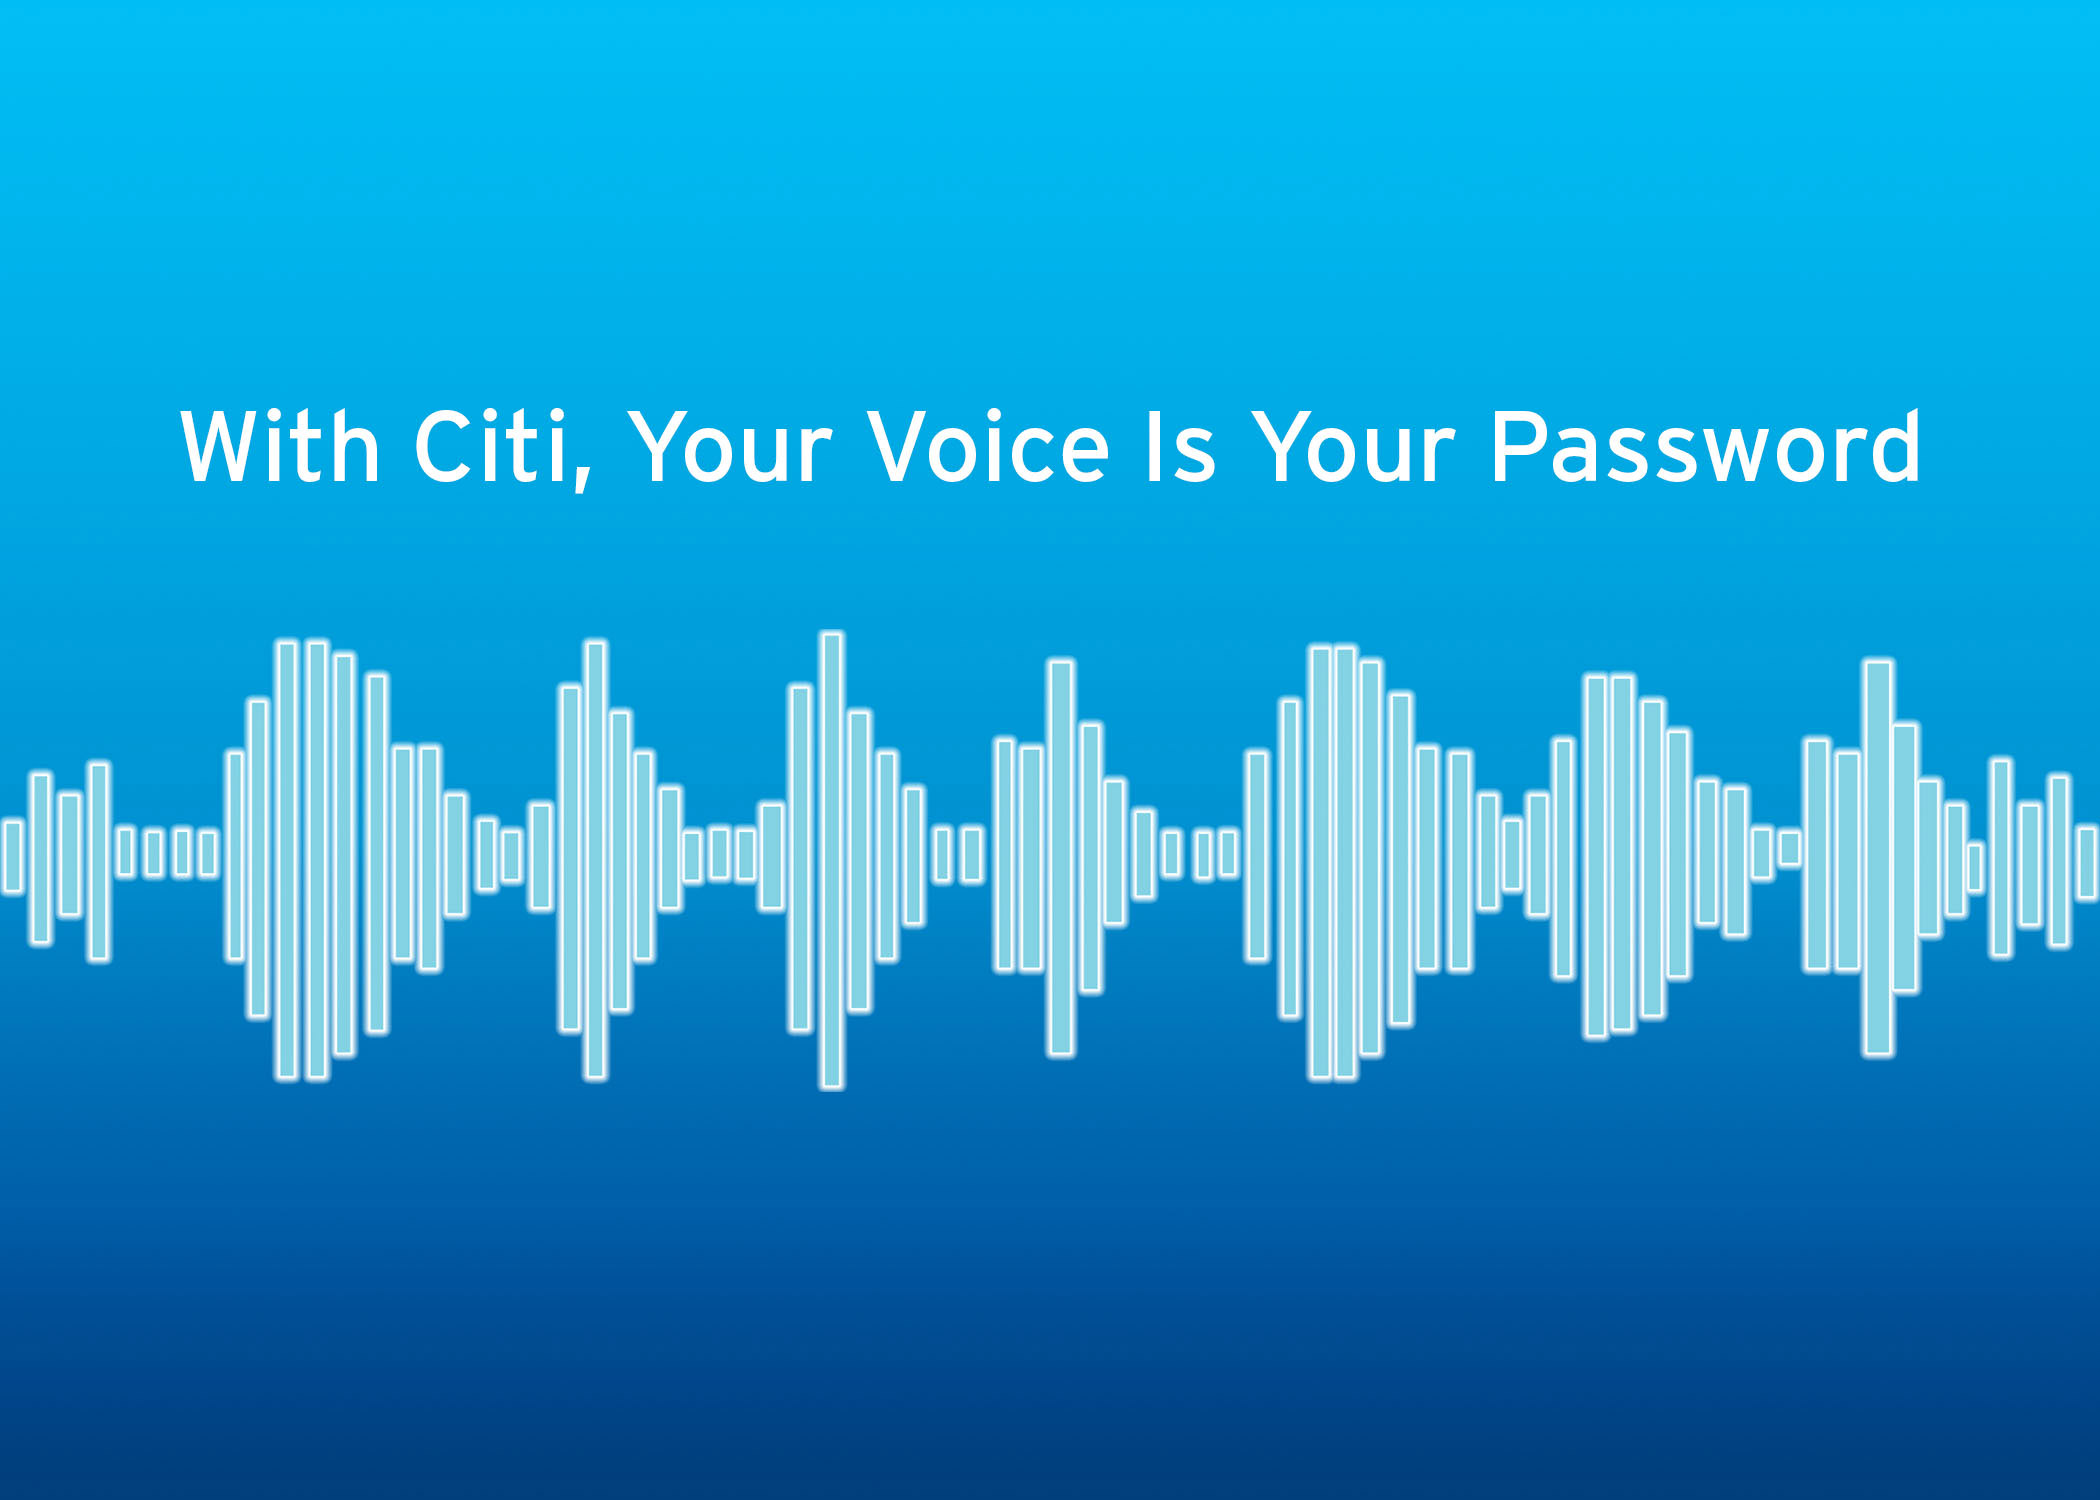 with-citi-your-voice-is-your-password_photo